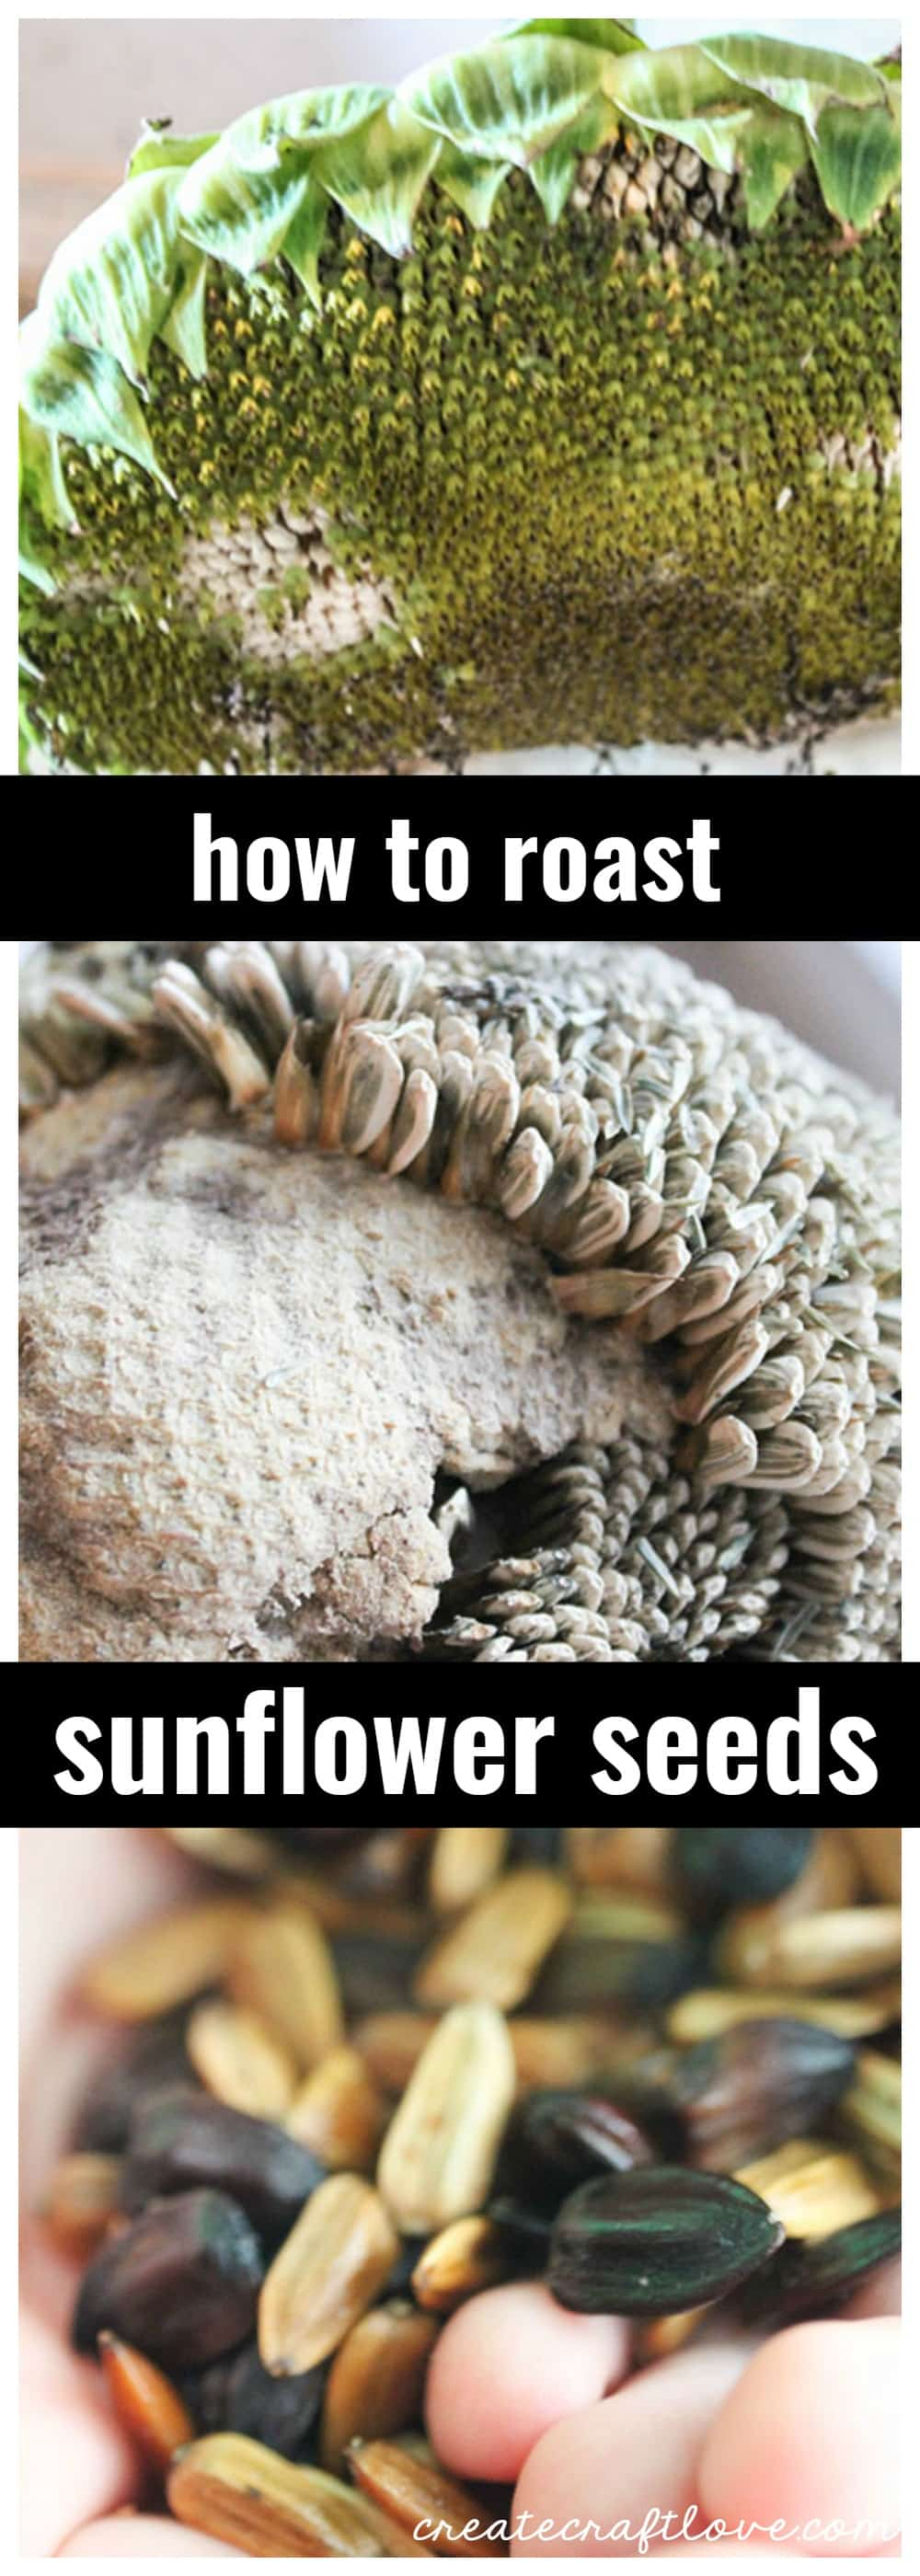 Sunflower seeds are one of my favorite salty snacks and watching October baseball with a batch of home roasted sunflower seeds just feels right.